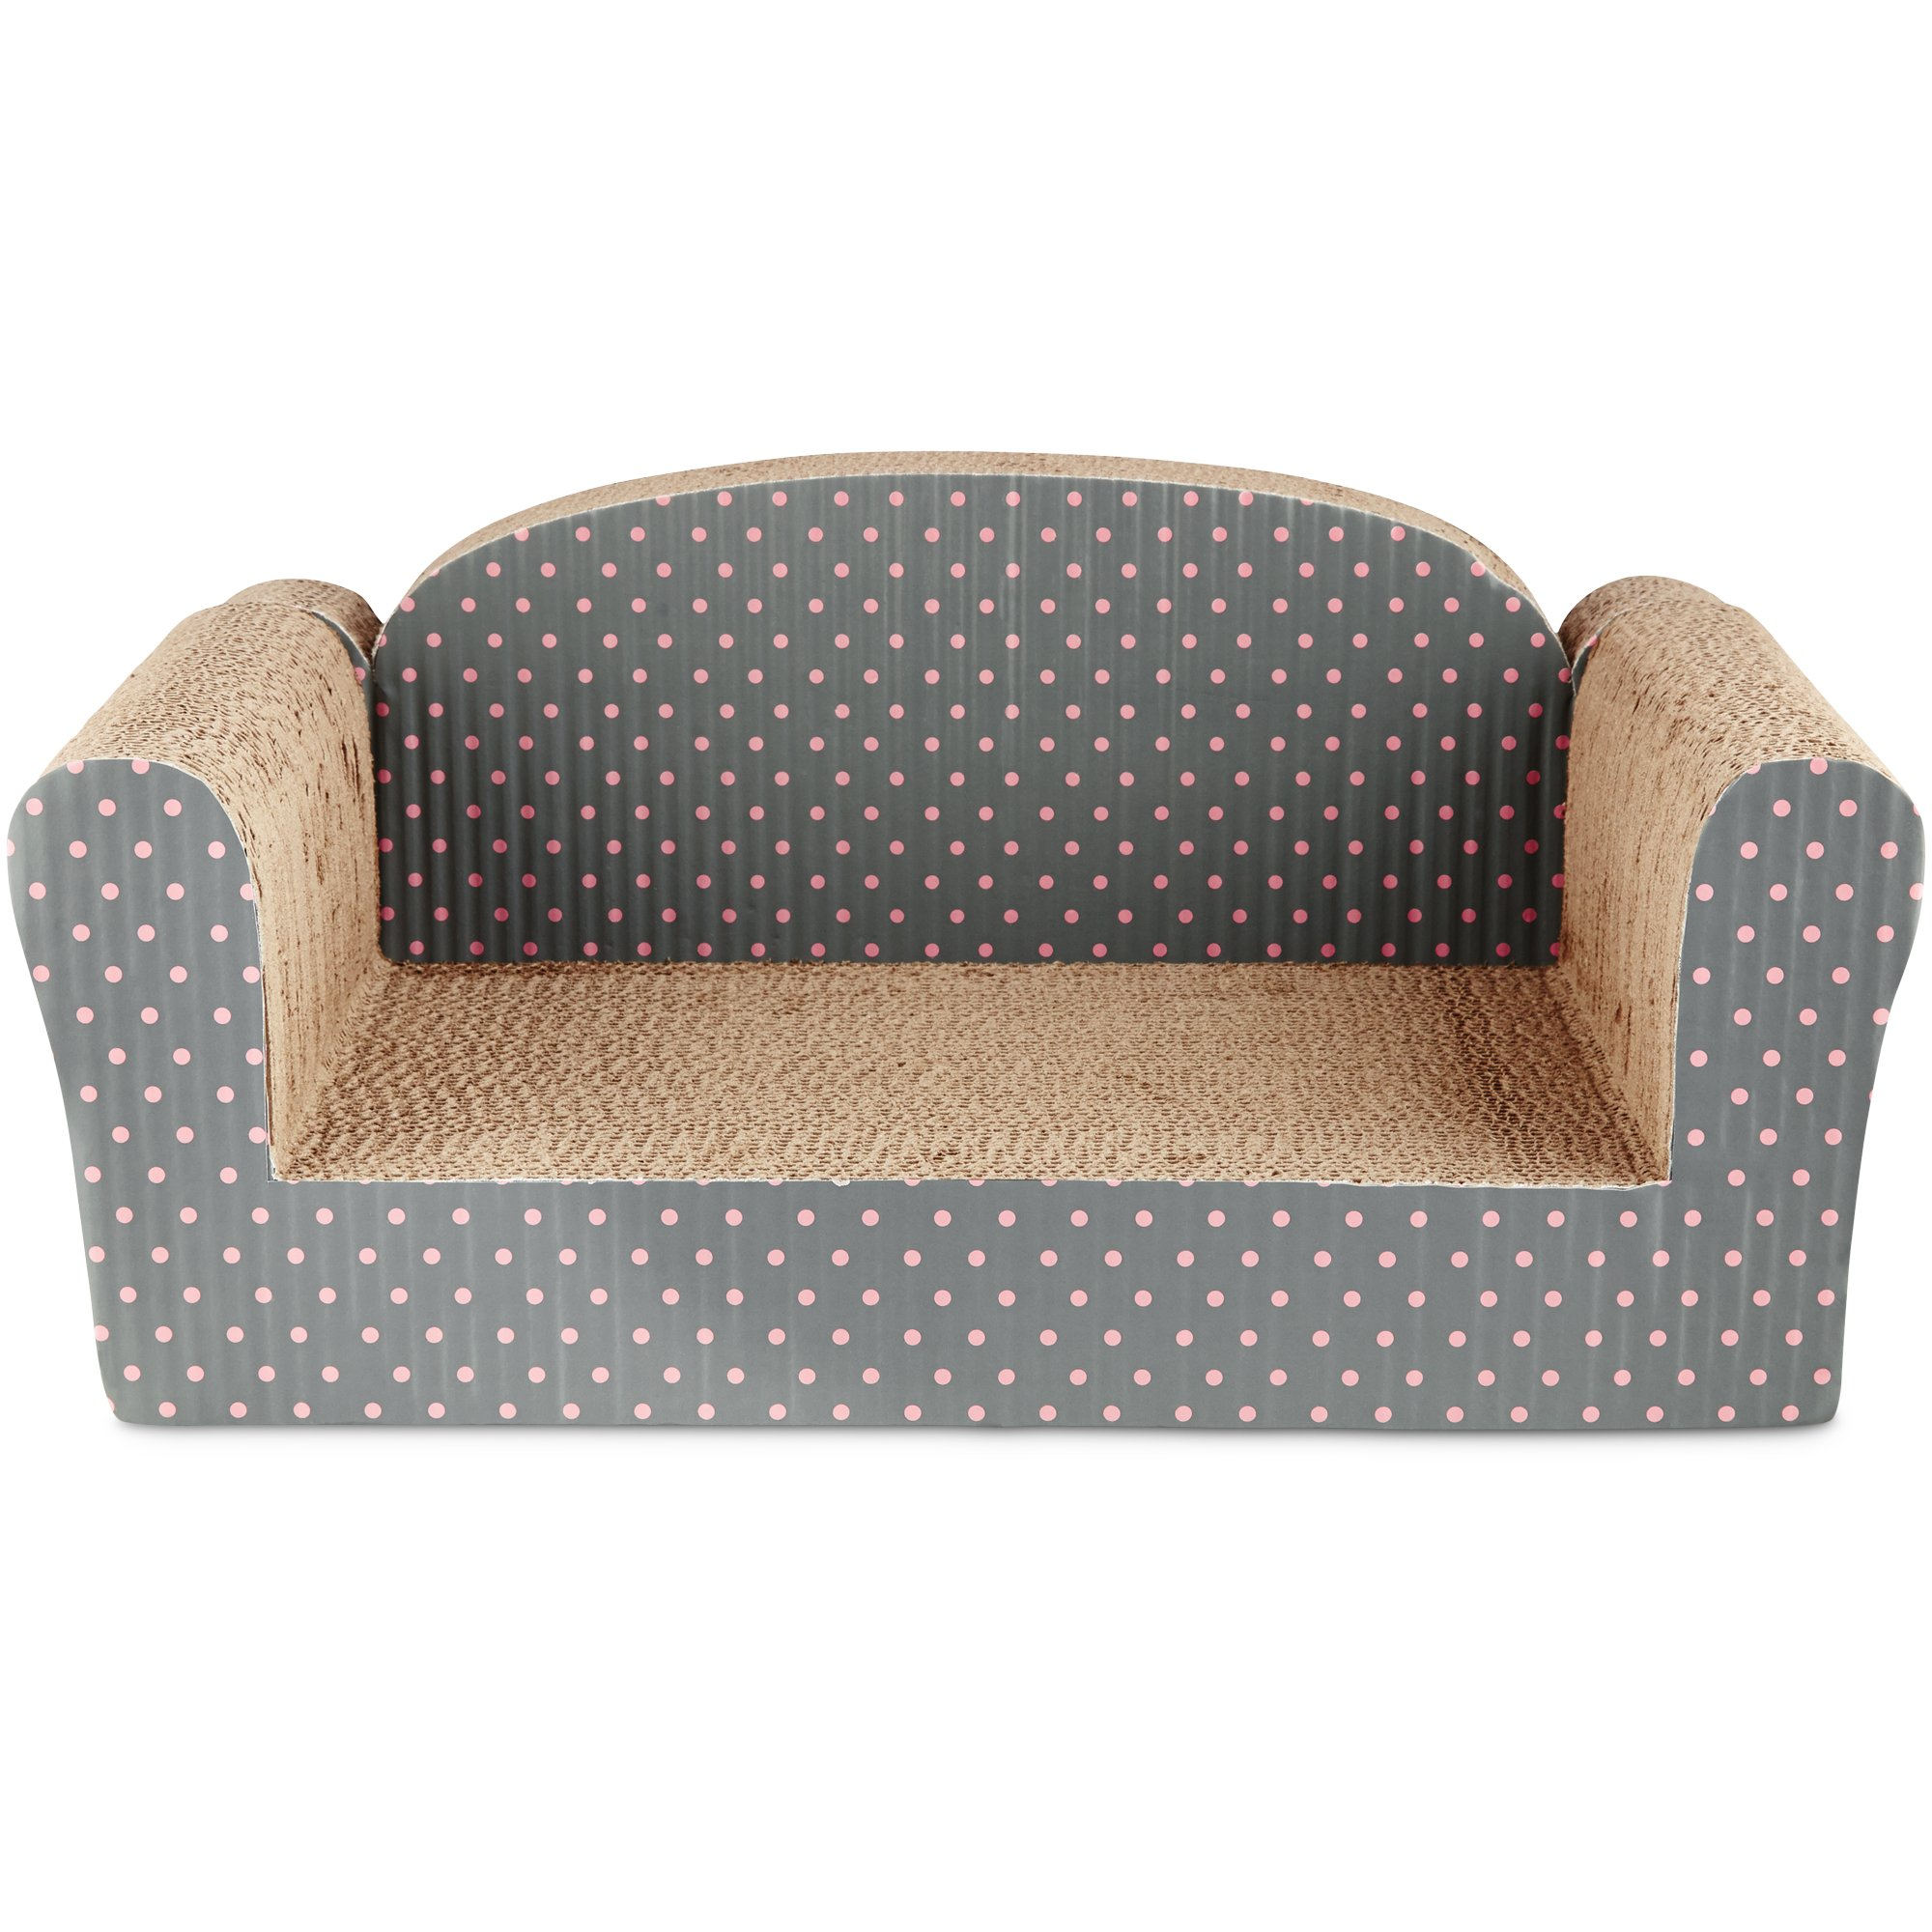 can dog fleas live in sofas furniture ireland you and me couch cardboard cat scratcher petco